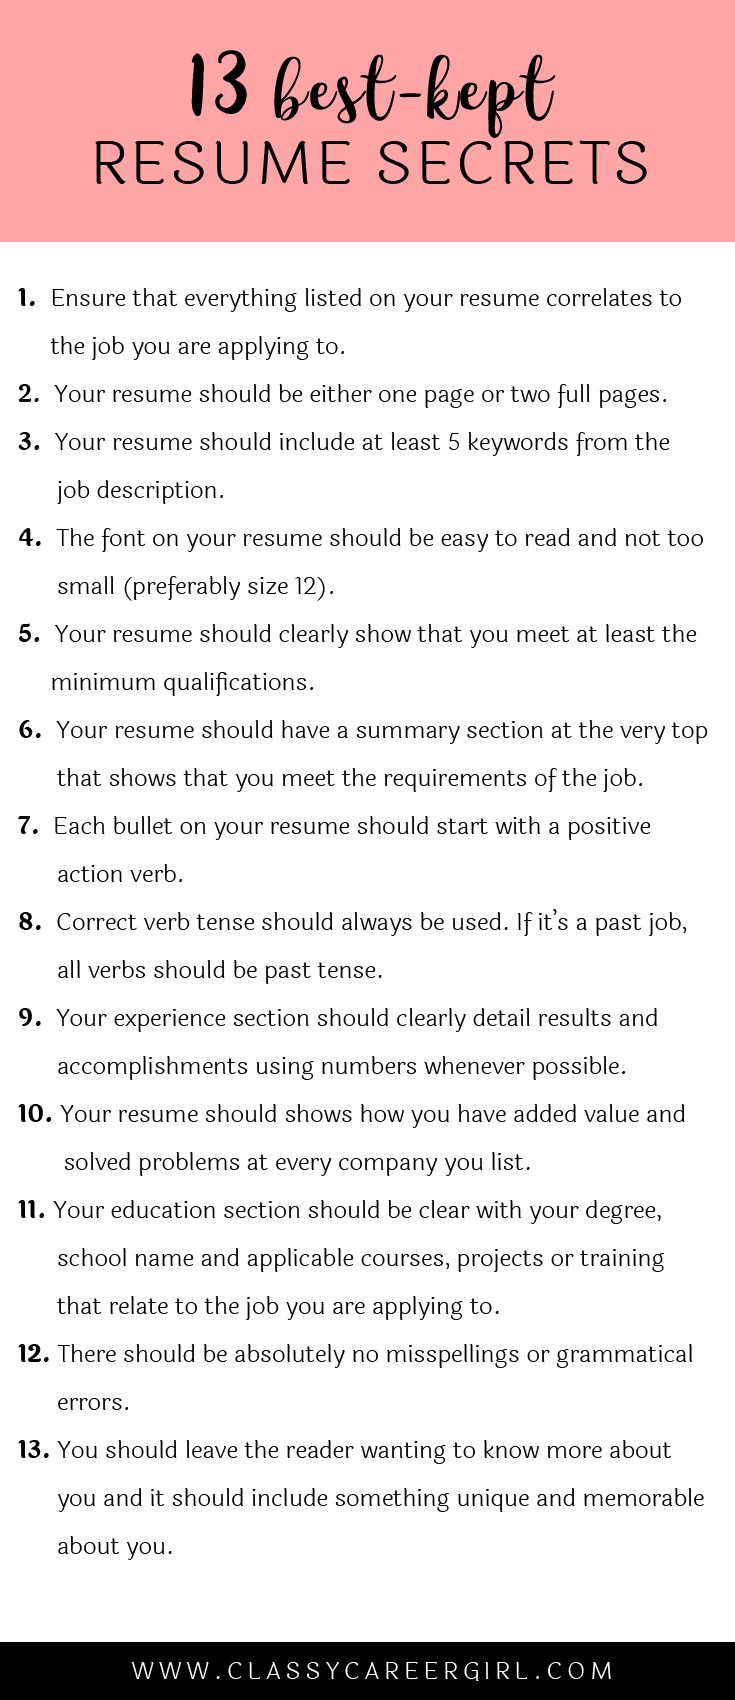 Opposenewapstandardsus  Nice  Ideas About Resume On Pinterest  Cv Format Resume Cv And  With Glamorous Some Hiring Managers Will Toss Your Resume Out If You Dont Know These  With Appealing Court Clerk Resume Also Massage Therapist Resumes In Addition Personal Skills List Resume And Cover Page For Resume Template As Well As Examples Of Dental Assistant Resumes Additionally Designer Resume Examples From Pinterestcom With Opposenewapstandardsus  Glamorous  Ideas About Resume On Pinterest  Cv Format Resume Cv And  With Appealing Some Hiring Managers Will Toss Your Resume Out If You Dont Know These  And Nice Court Clerk Resume Also Massage Therapist Resumes In Addition Personal Skills List Resume From Pinterestcom